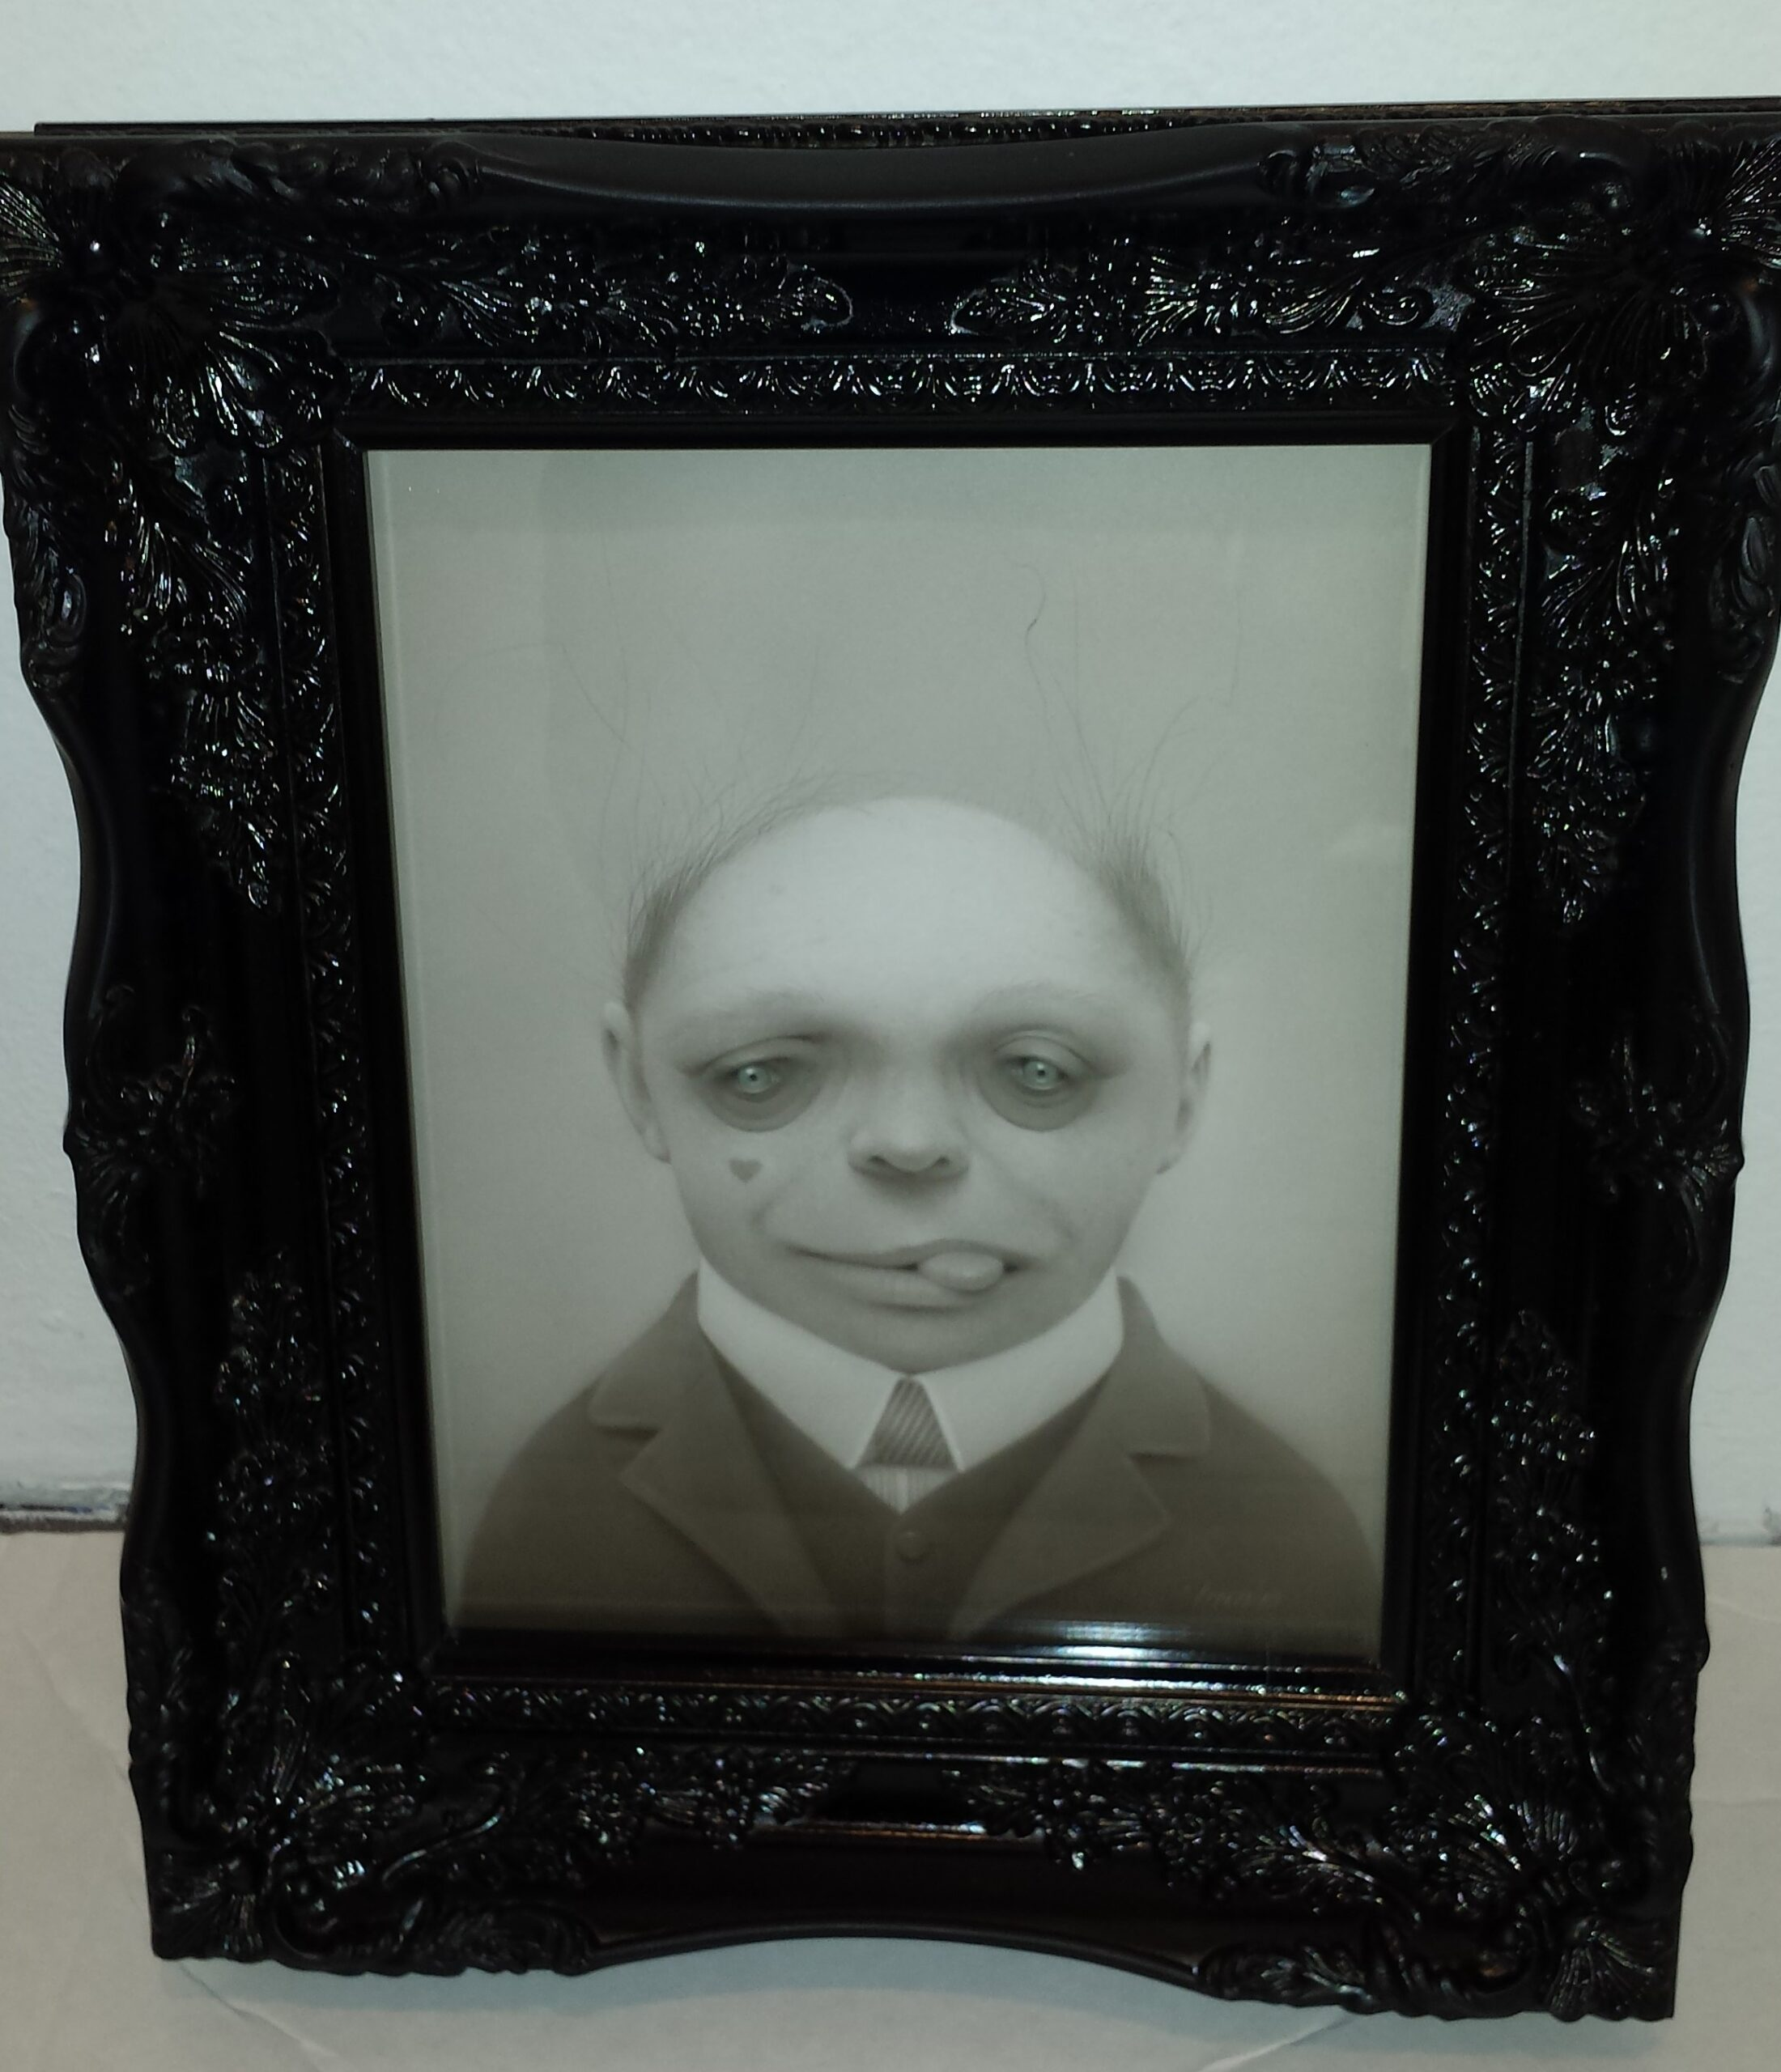 BARNEY THE GHOUL FRAMING EXAMPLE